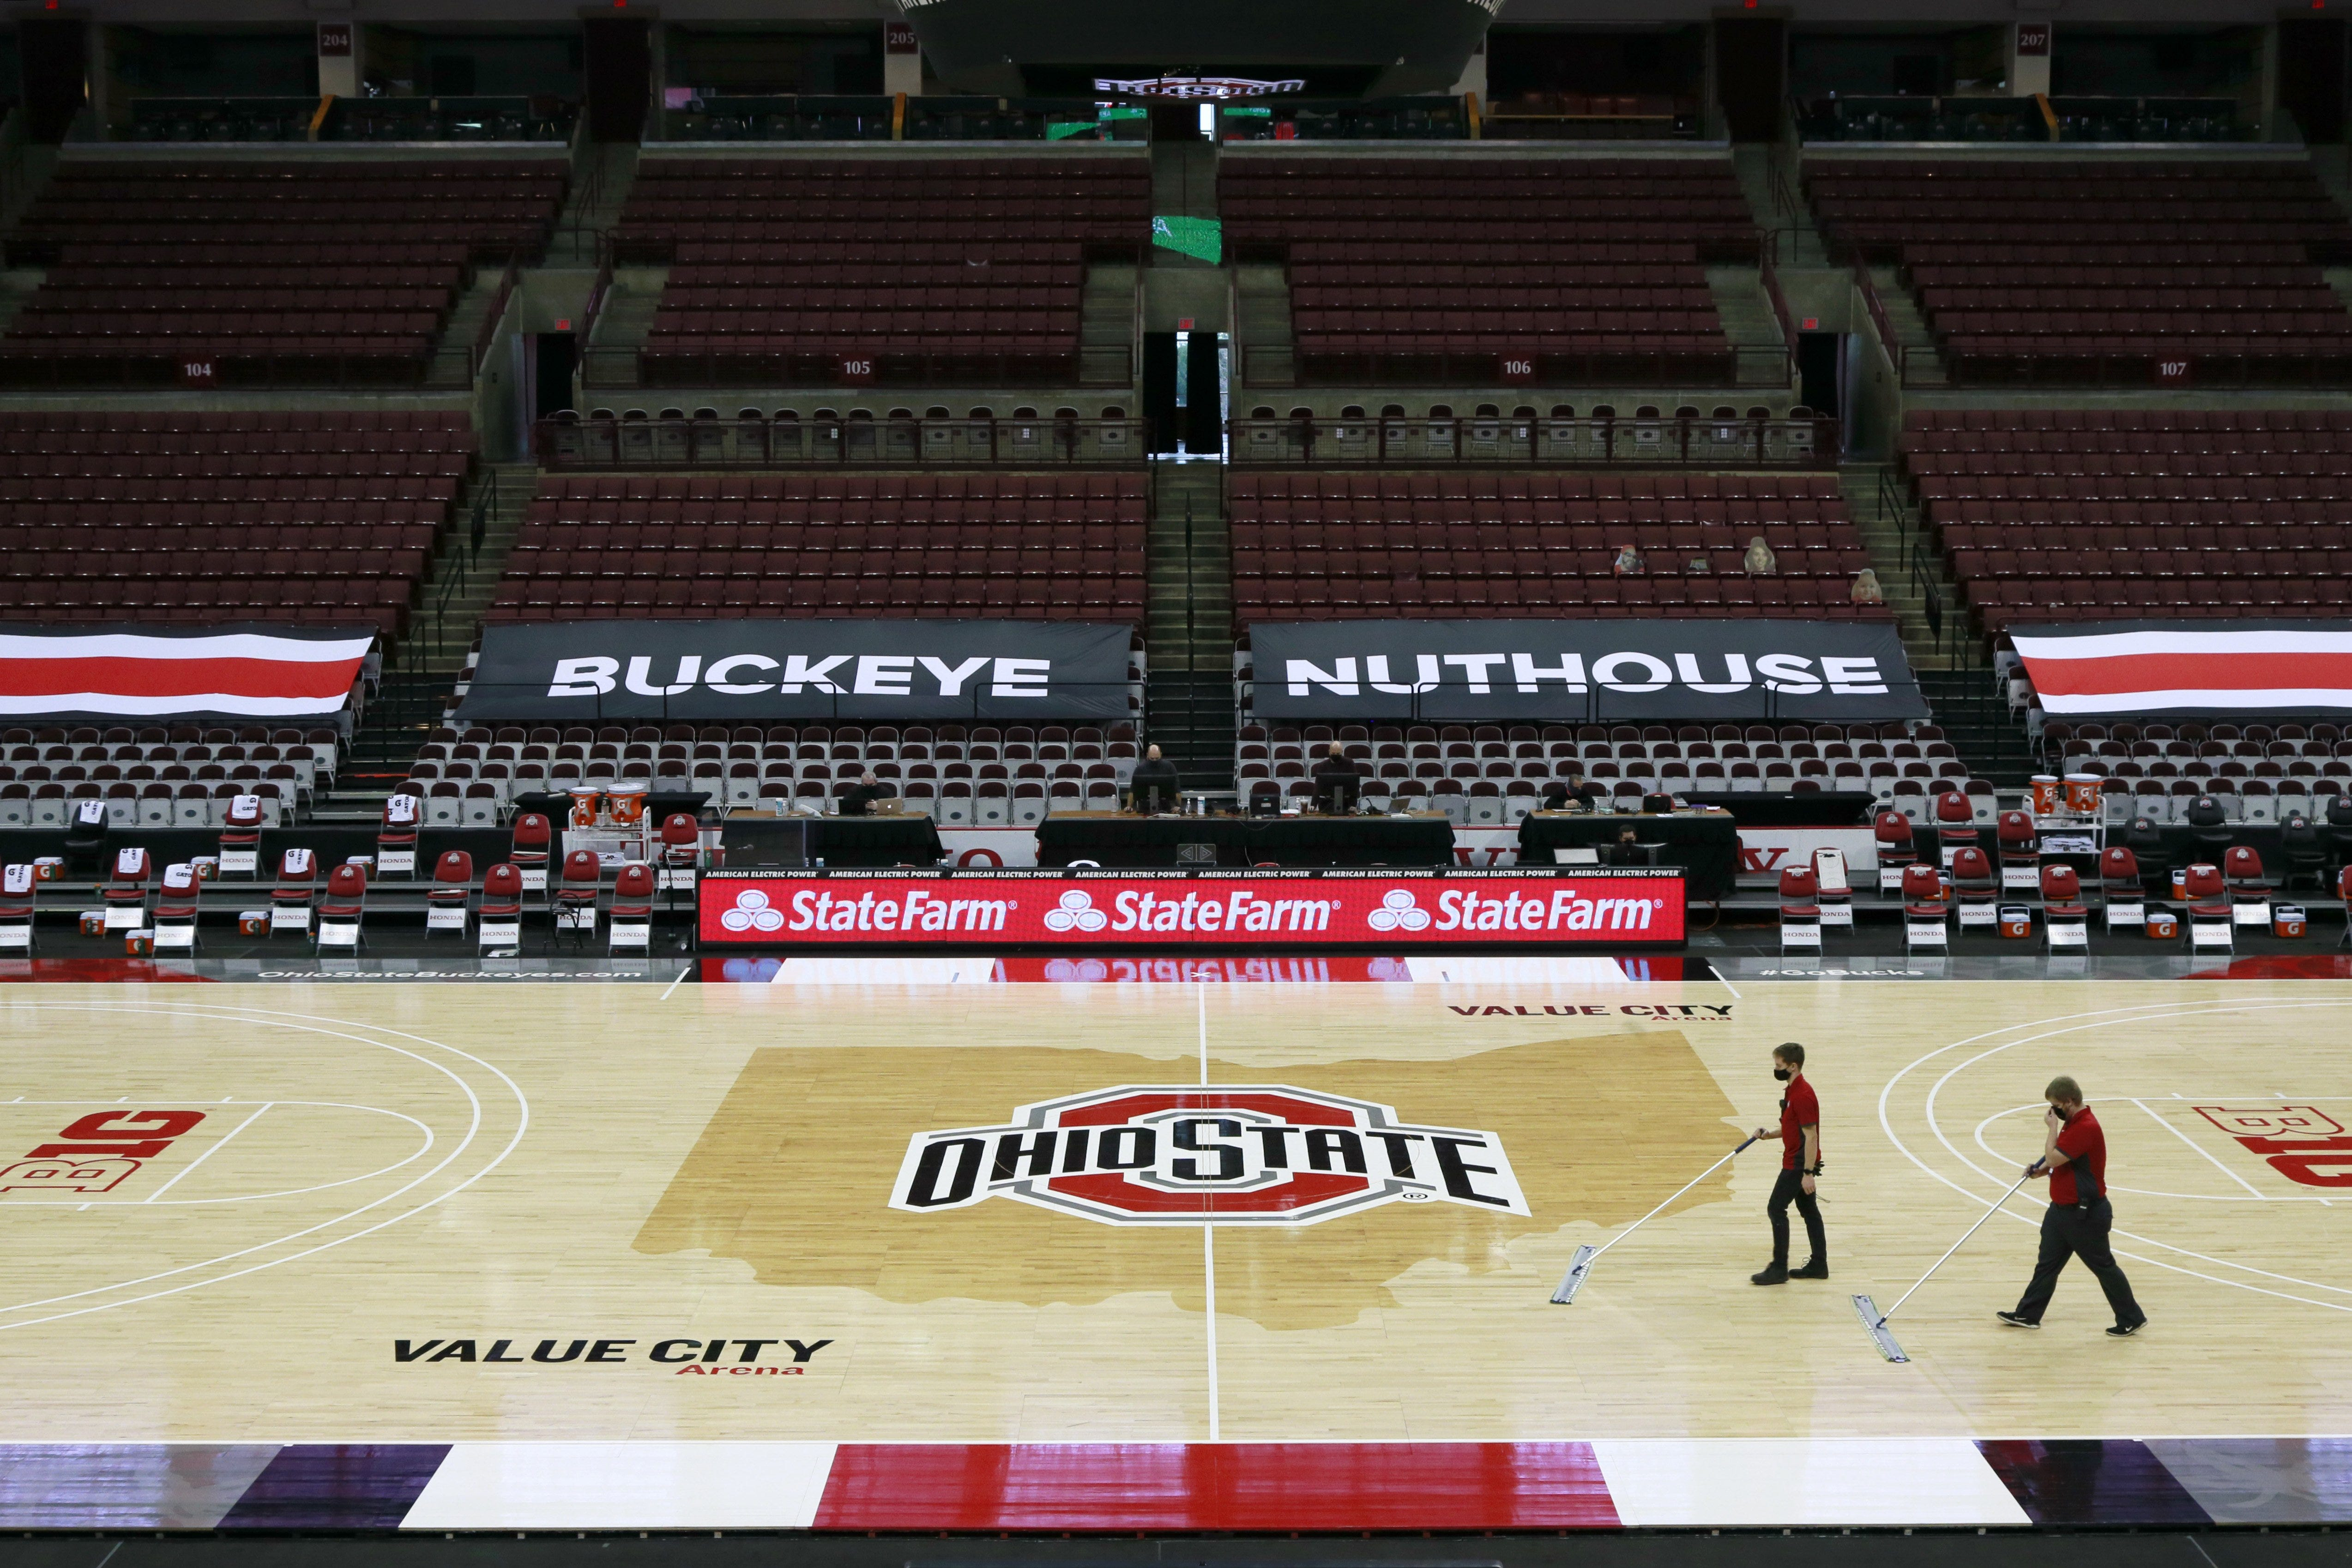 Syndication: The Columbus Dispatch